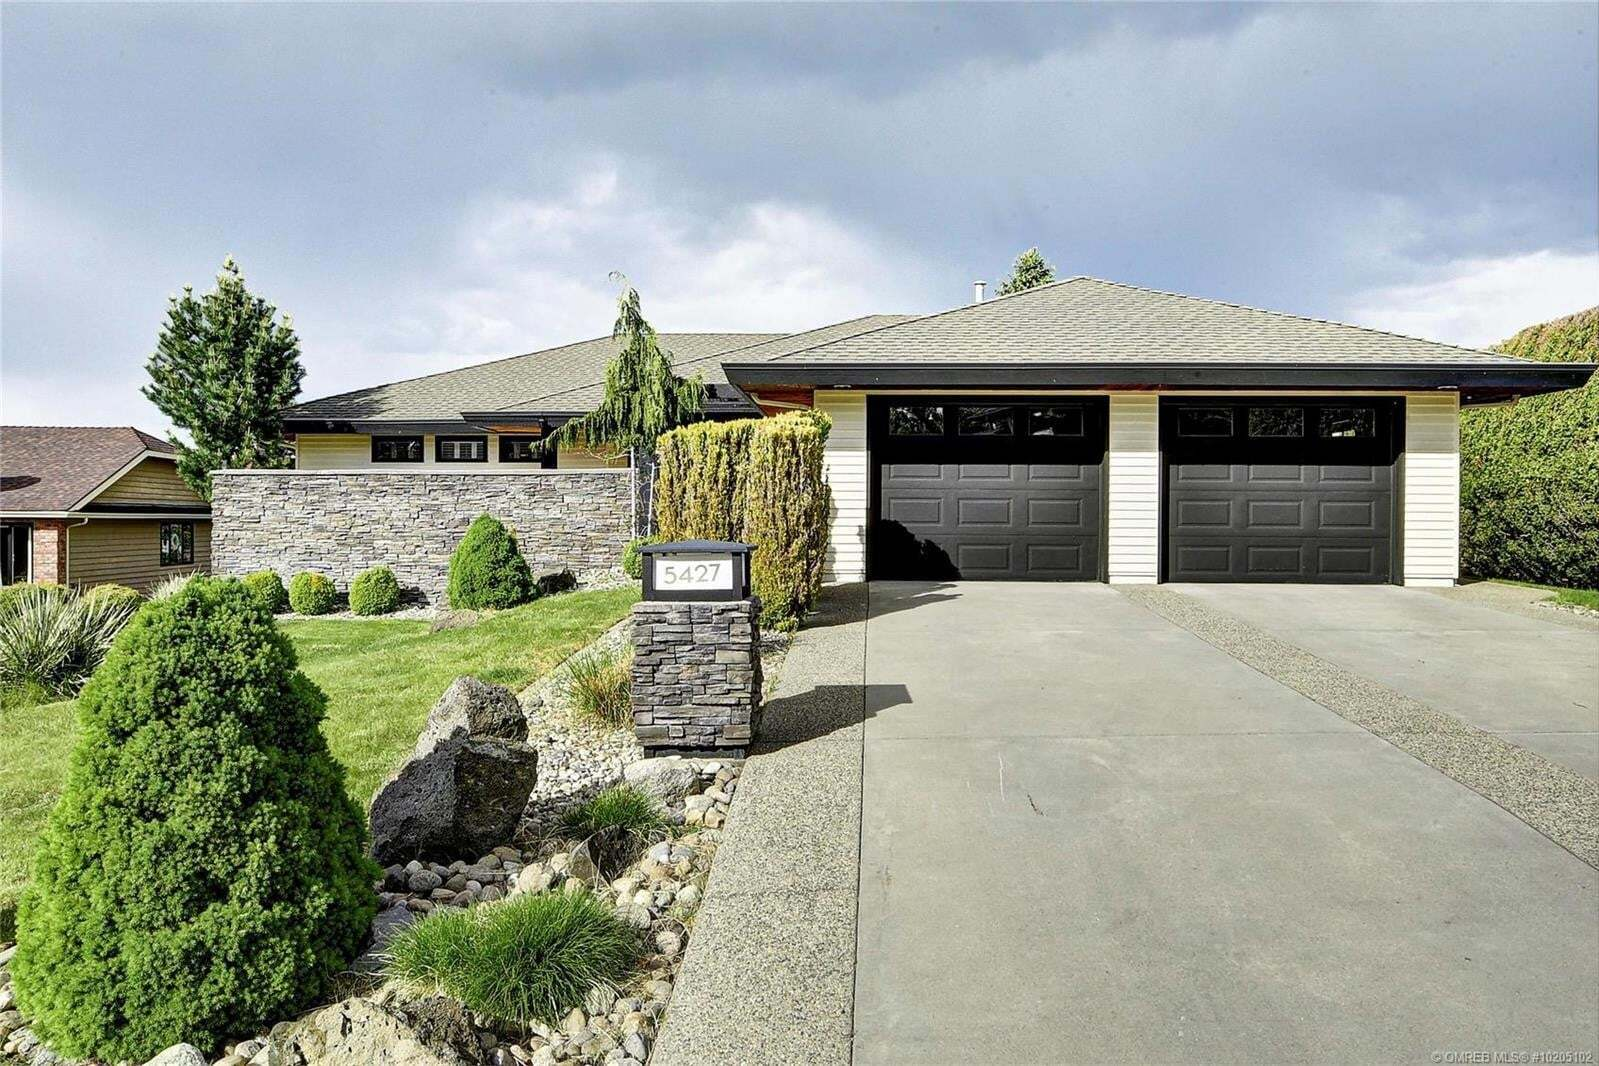 House for sale at 5427 Tanager Ct Kelowna British Columbia - MLS: 10205102